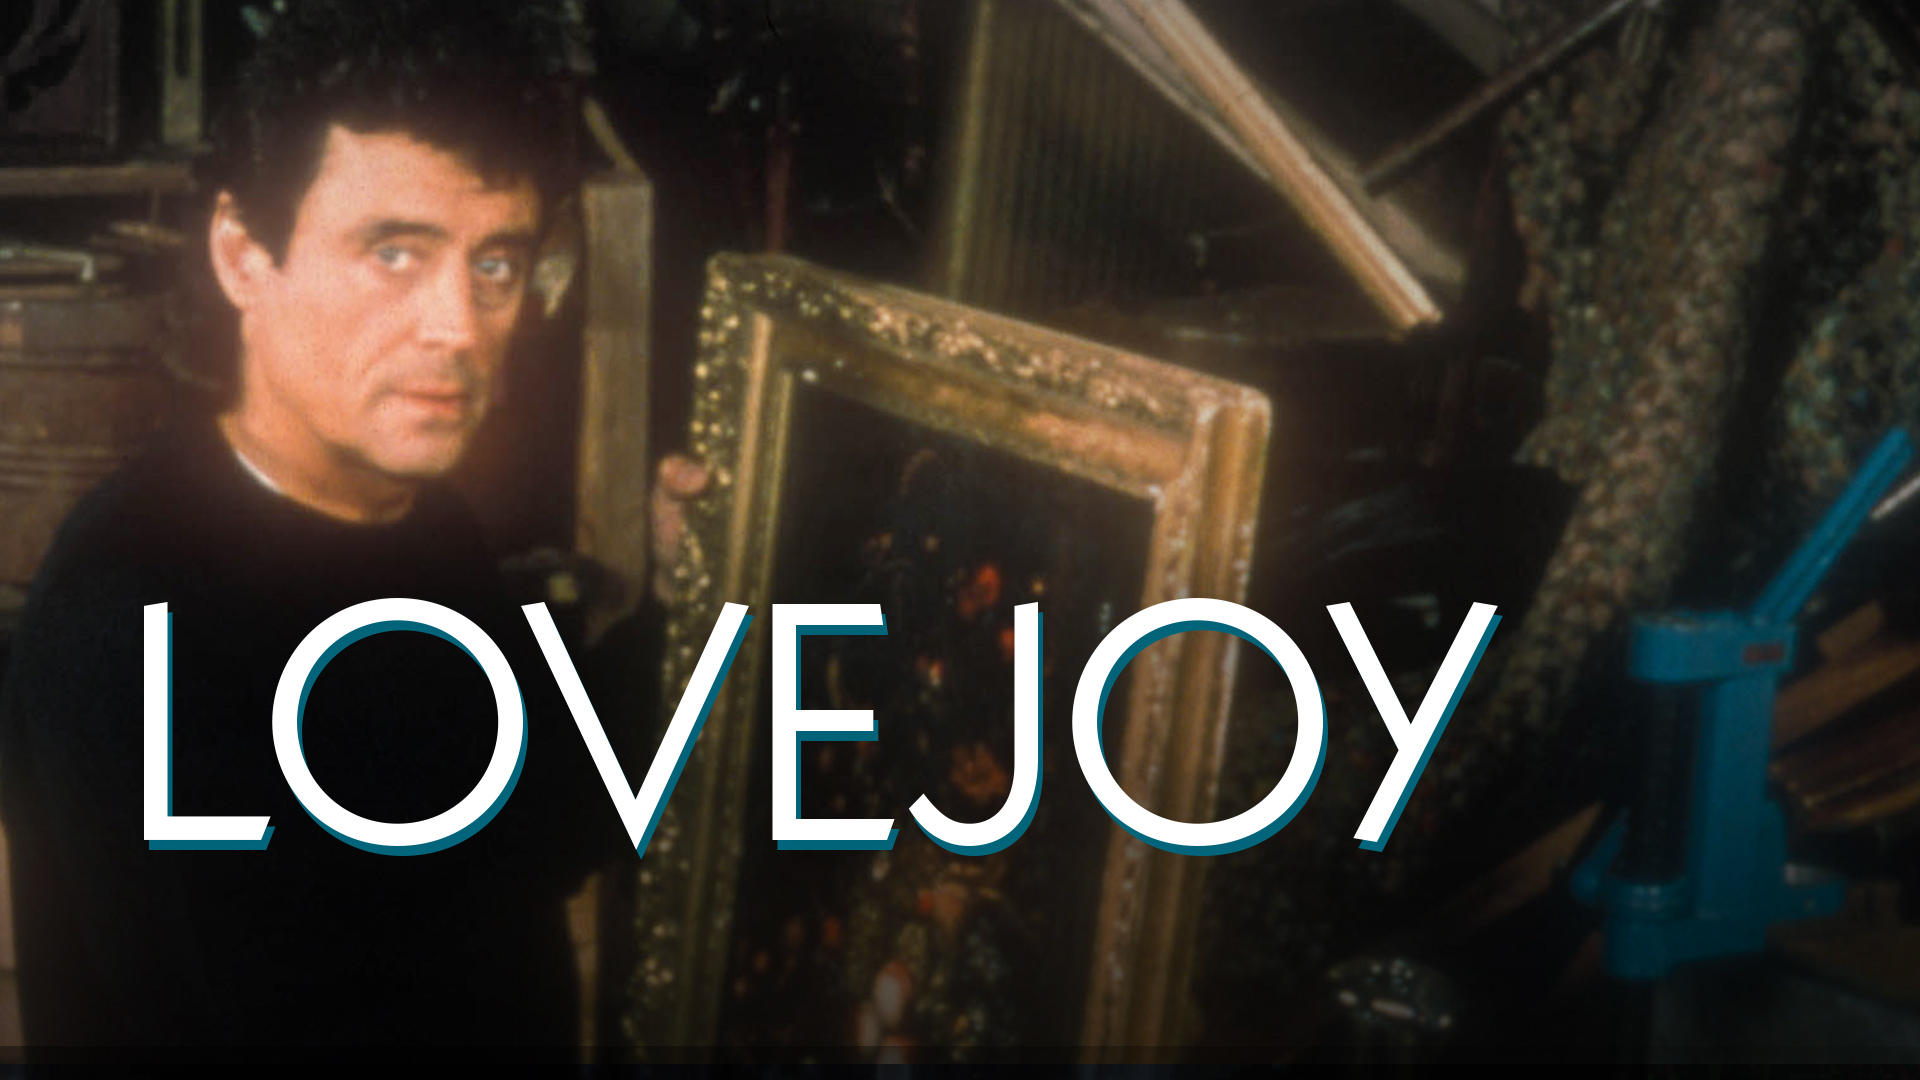 Lovejoy Series 1